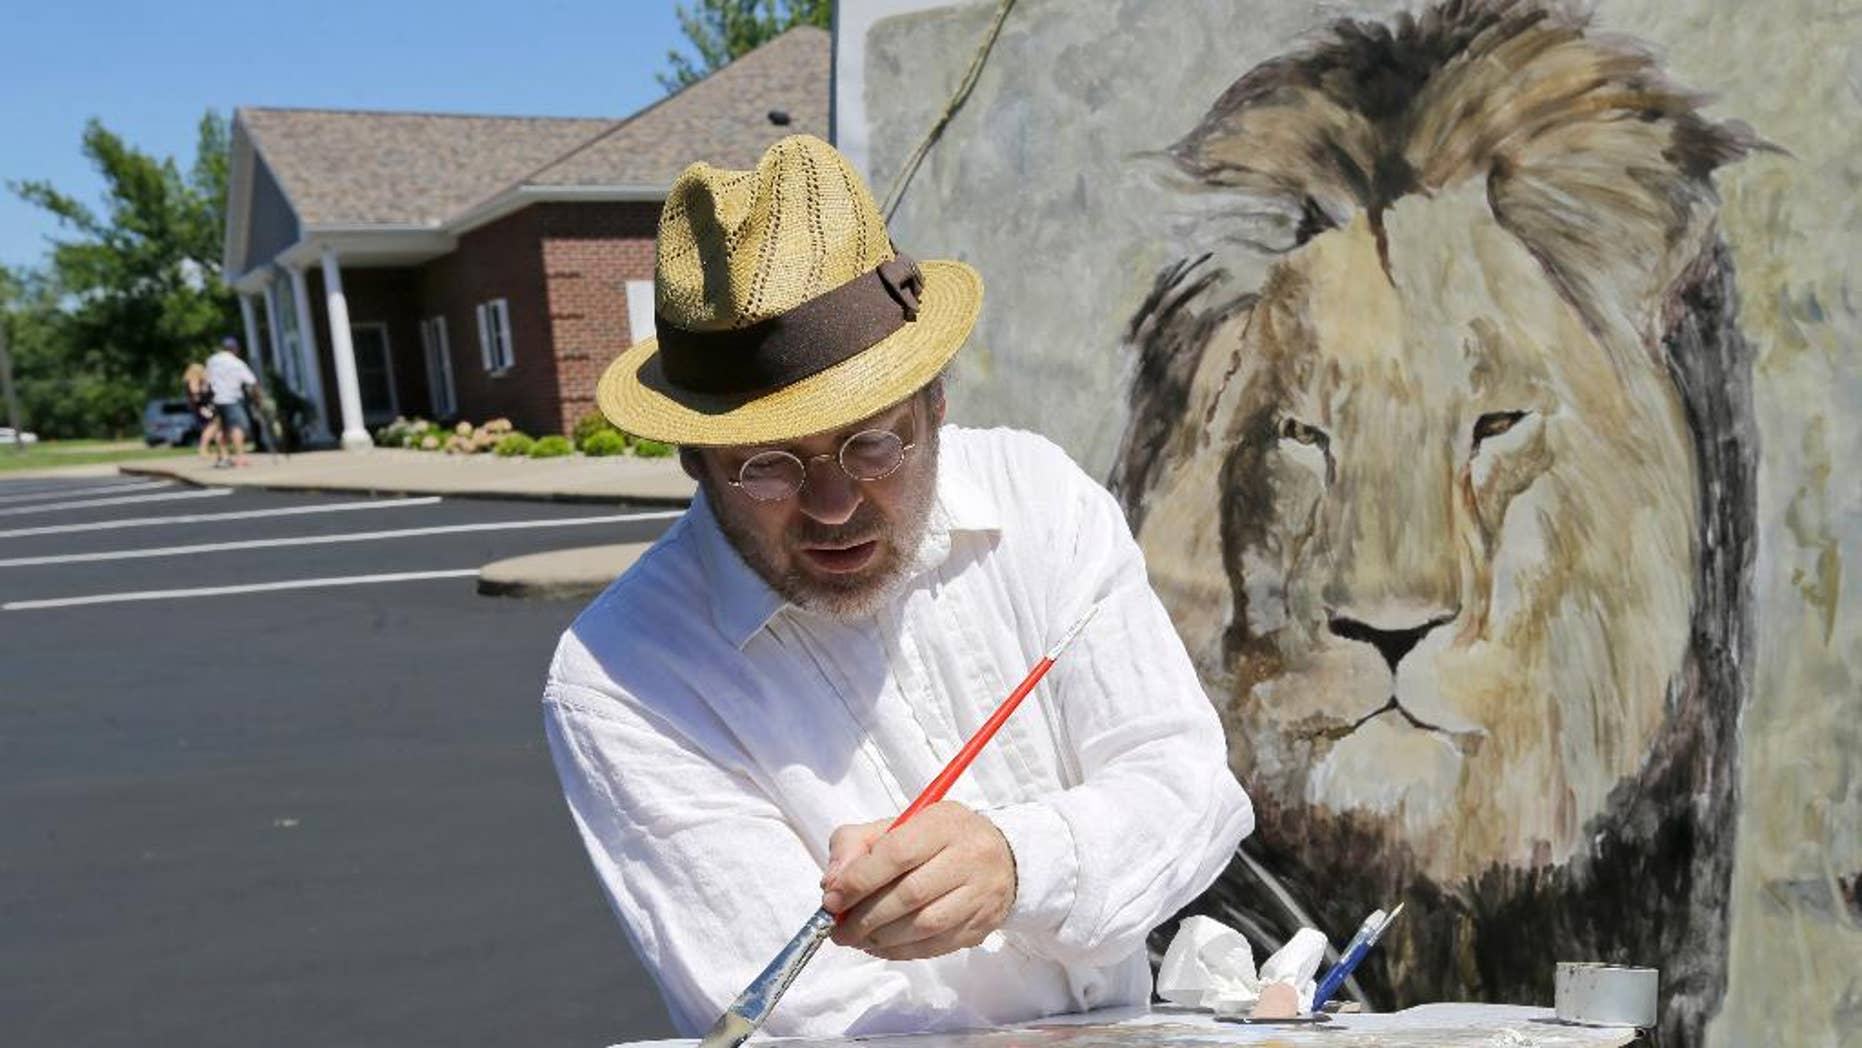 FILE - In this July 29, 2015, file photo, artist Mark Balma paints a mural of Cecil, a well-known lion killed by Minnesota dentist Walter Palmer during a guided bow hunting trip in Zimbabwe, as part of a silent protest outside Palmer's office in Bloomington, Minn. Palmer participated in an interview Sunday, Sept. 6, in which he disputed some accounts of the hunt, expressed agitation at the animosity directed at those close to him and said he would be back at work within days. (AP Photo/Ann Heisenfelt, File)